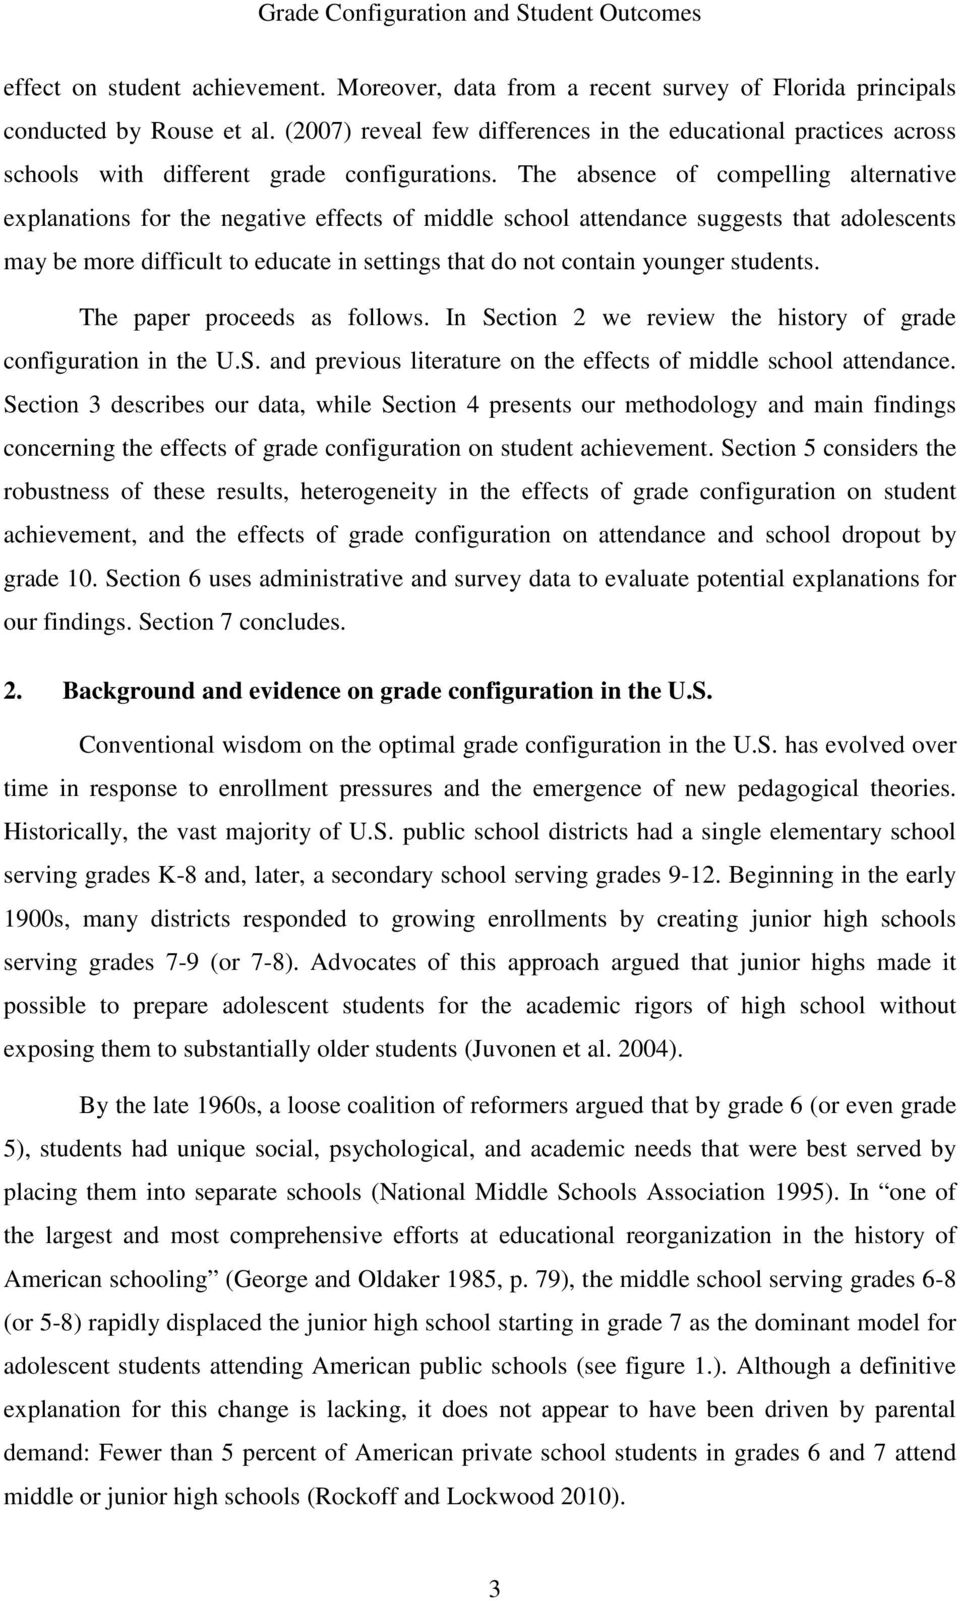 The absence of compelling alternative explanations for the negative effects of middle school attendance suggests that adolescents may be more difficult to educate in settings that do not contain